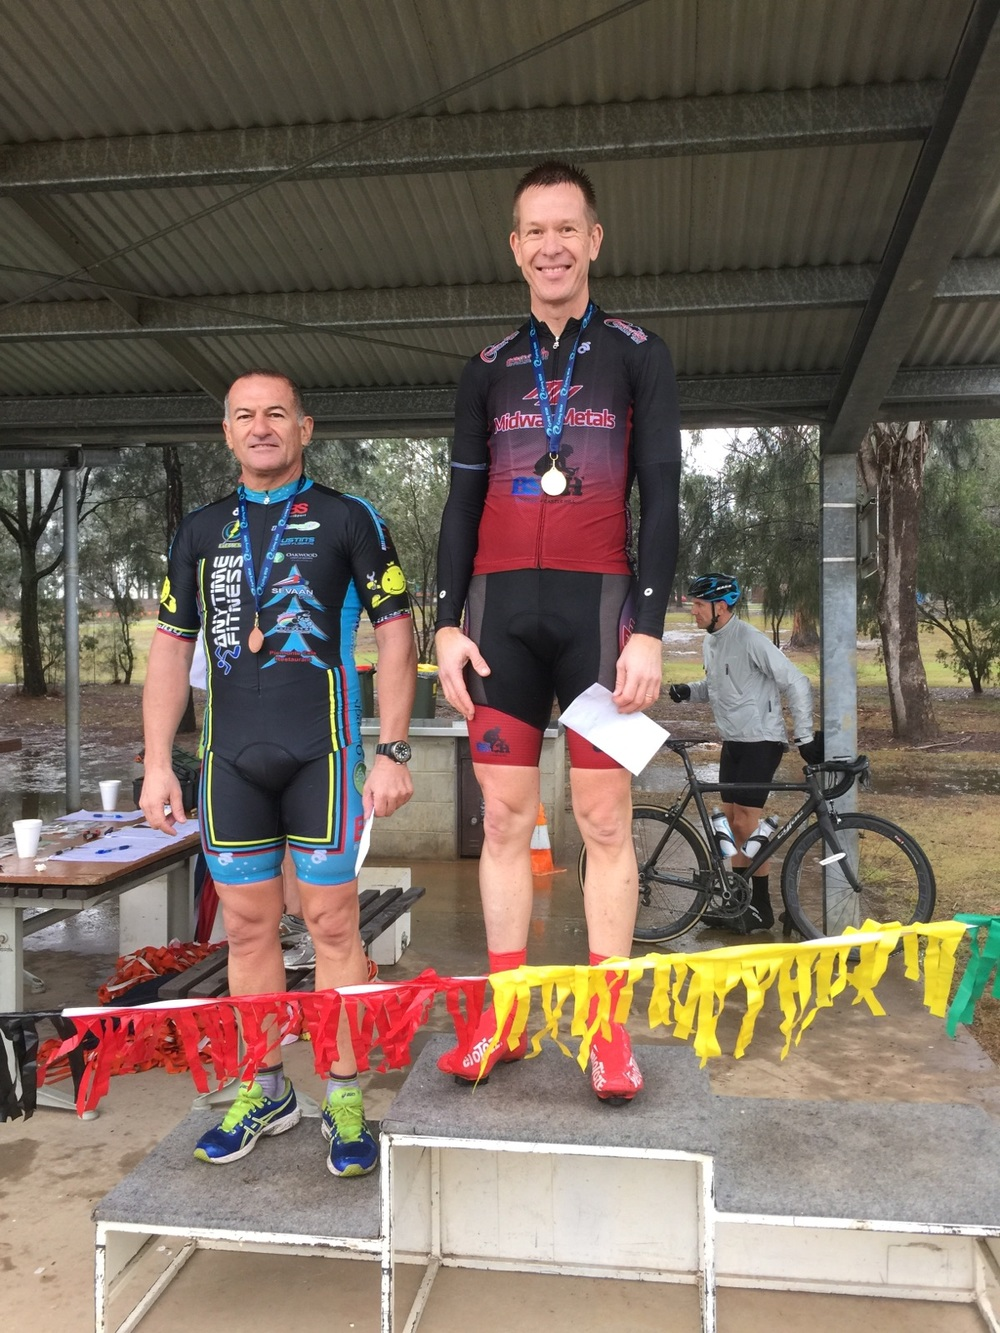 Anthony Colantonio 3rd in Masters M5 at Penrith Lakes